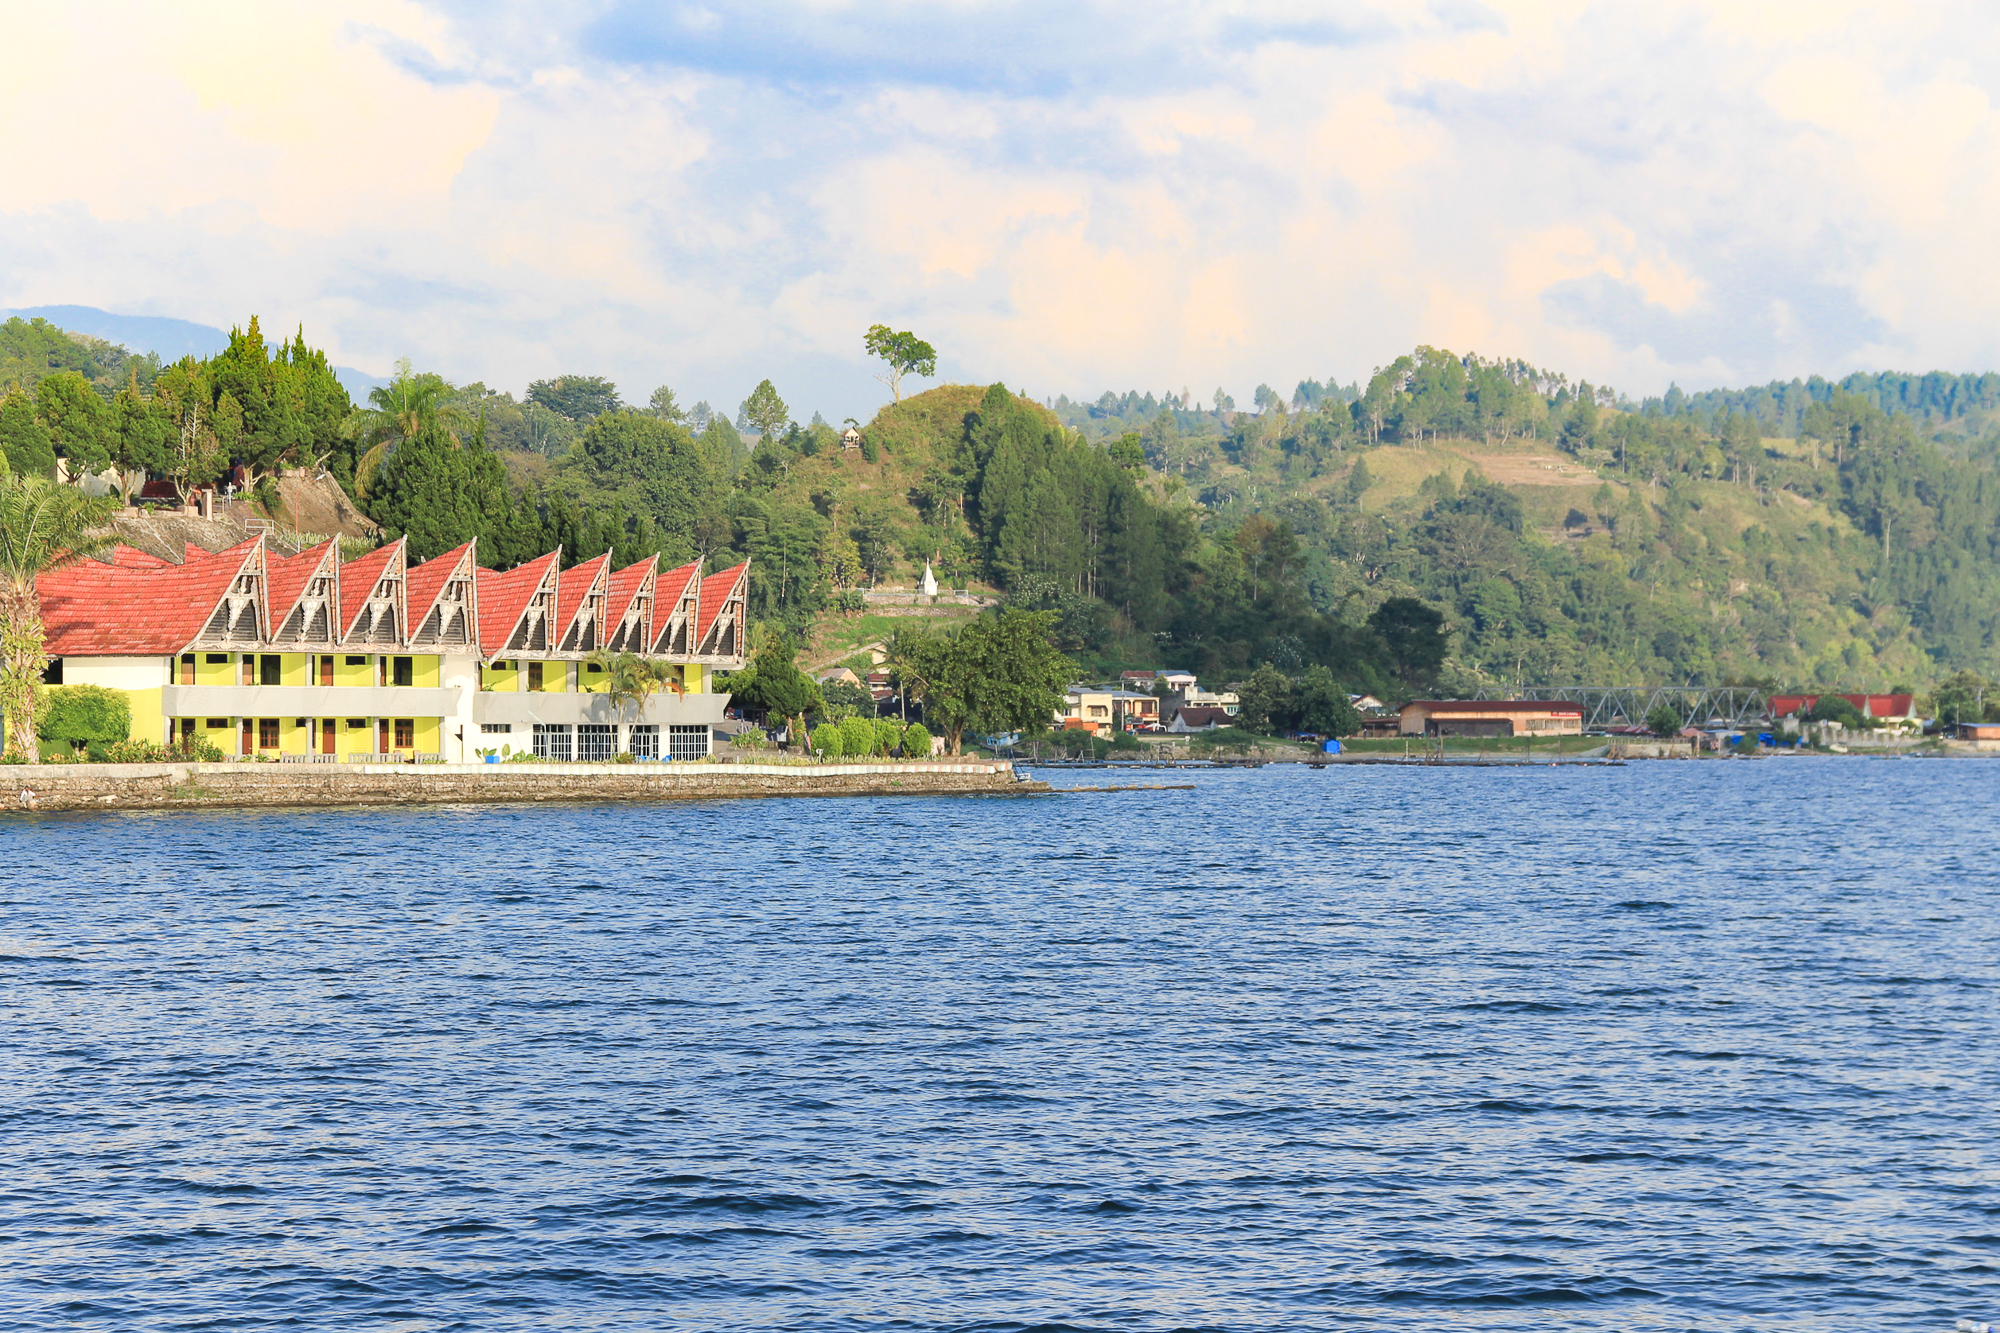 From Medan to Samosir Island (Lake Toba) via Siantar and Parapat